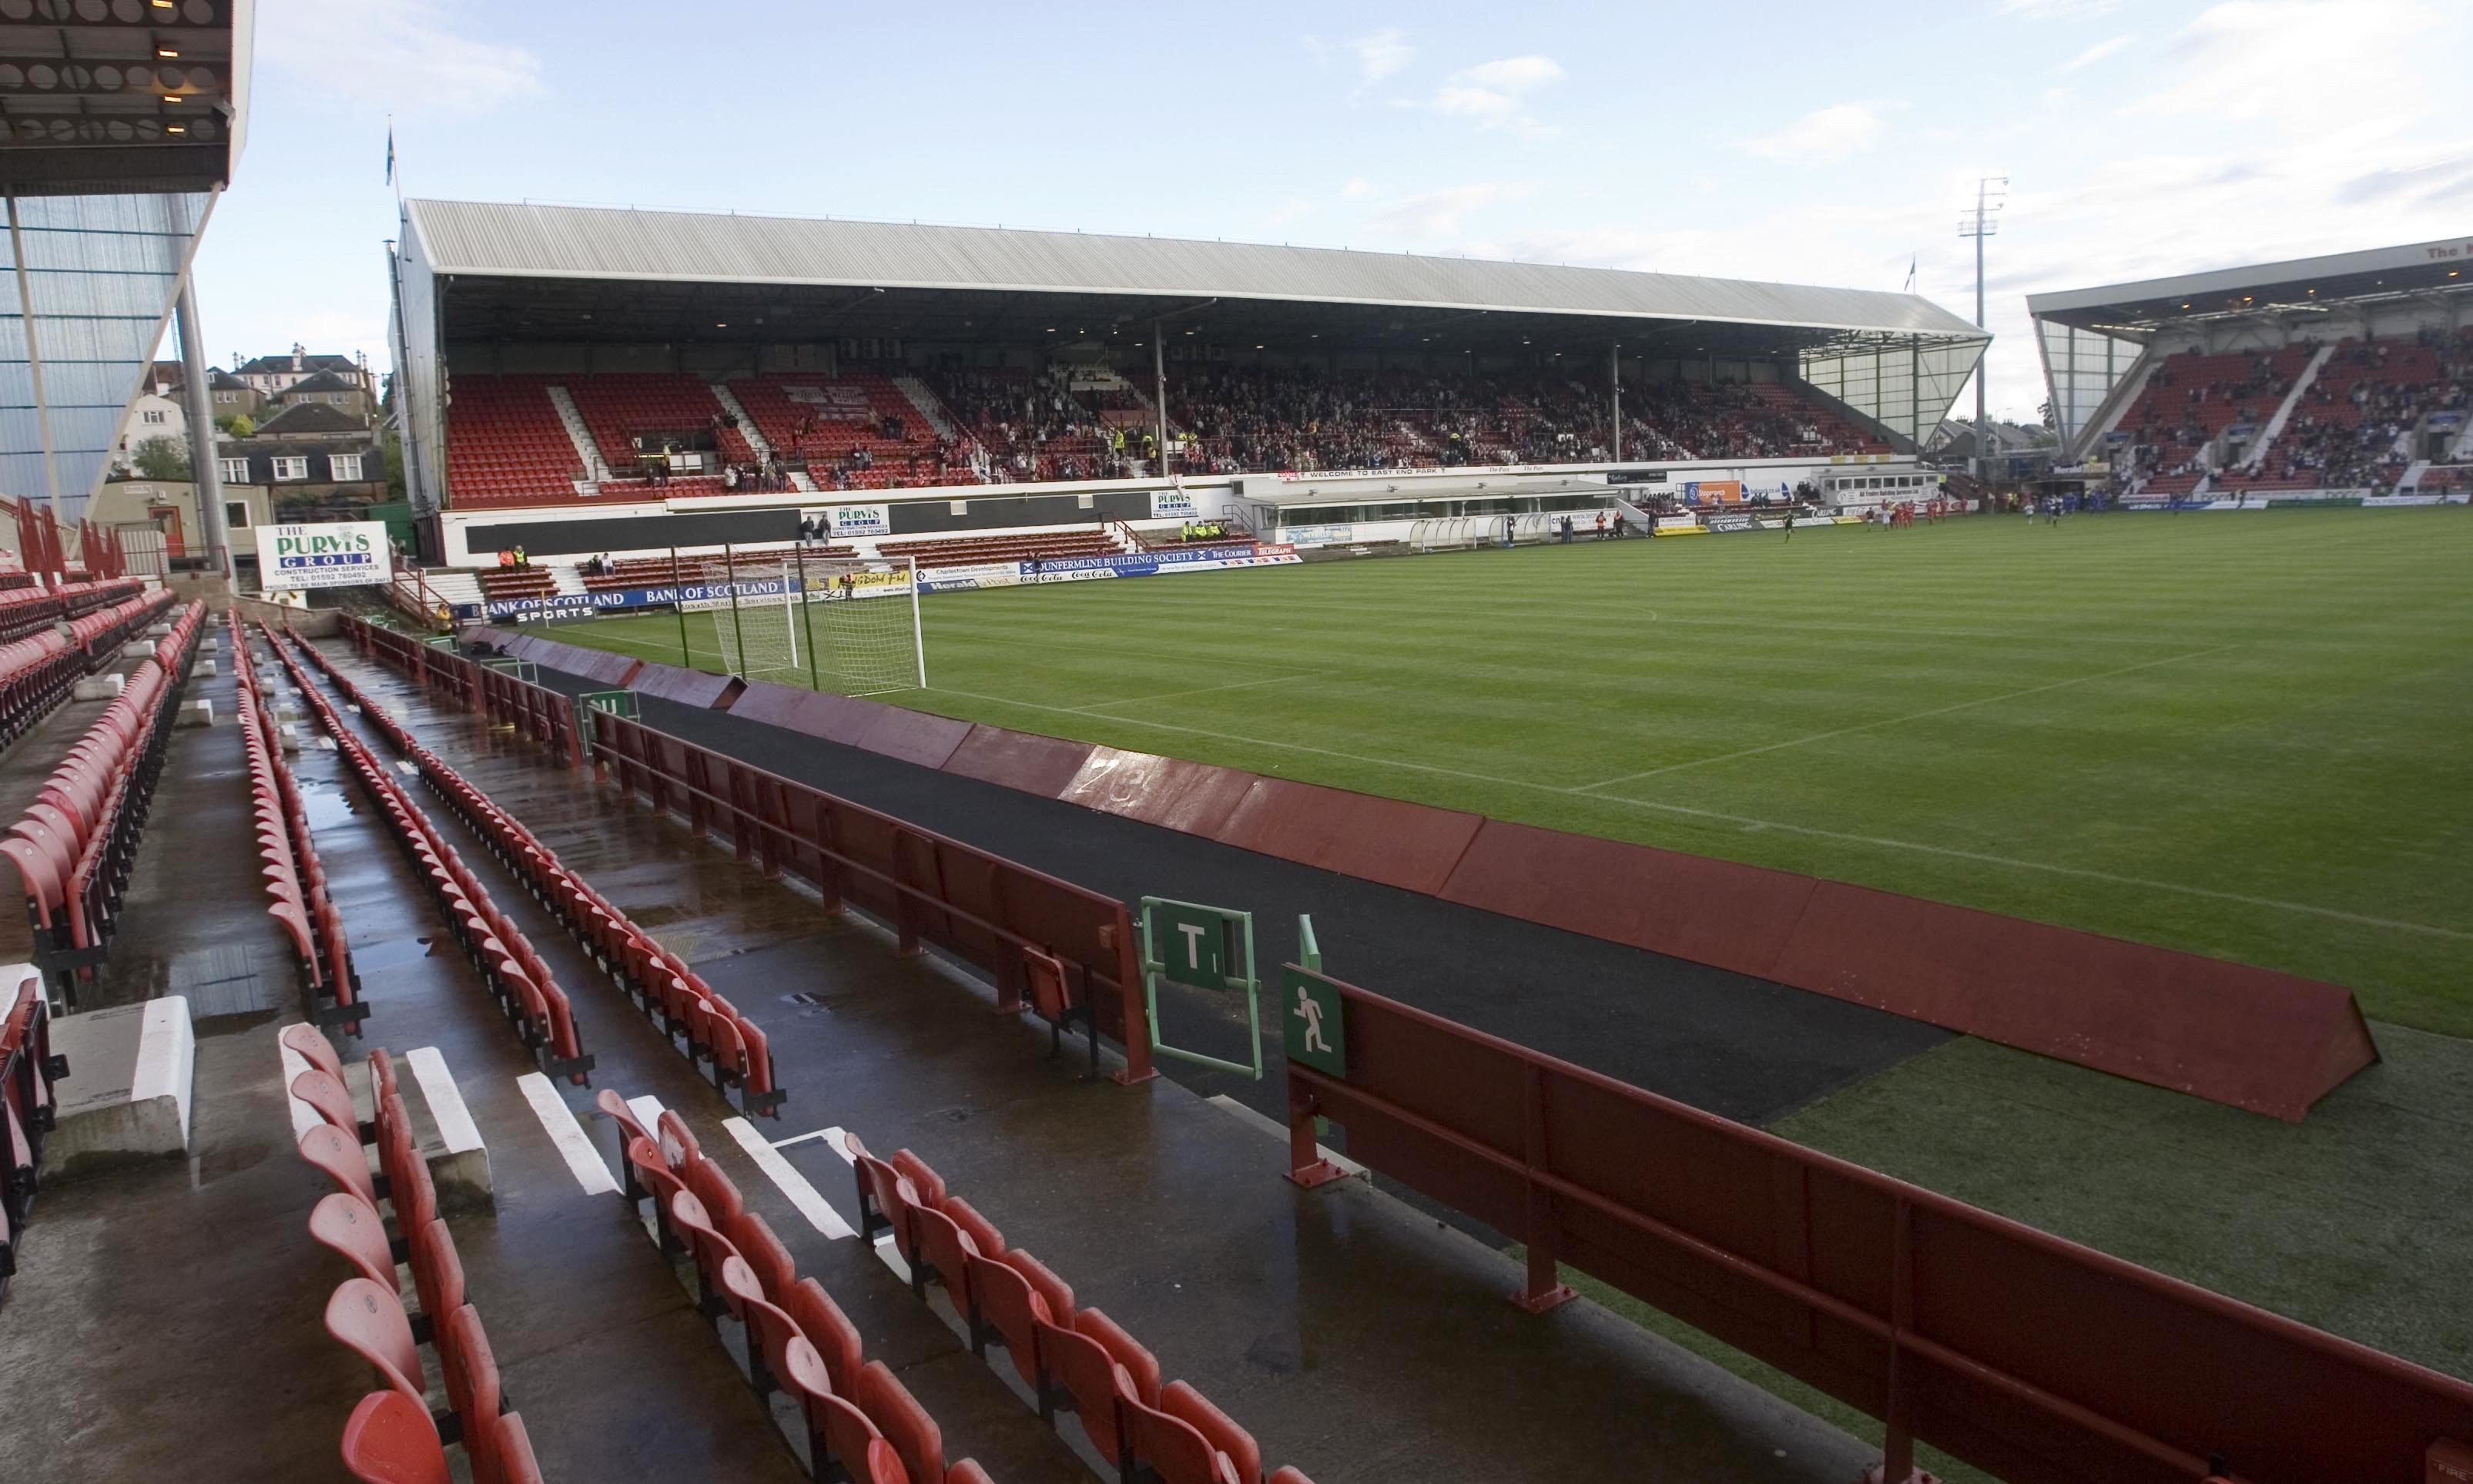 East End Park in Dunfermline